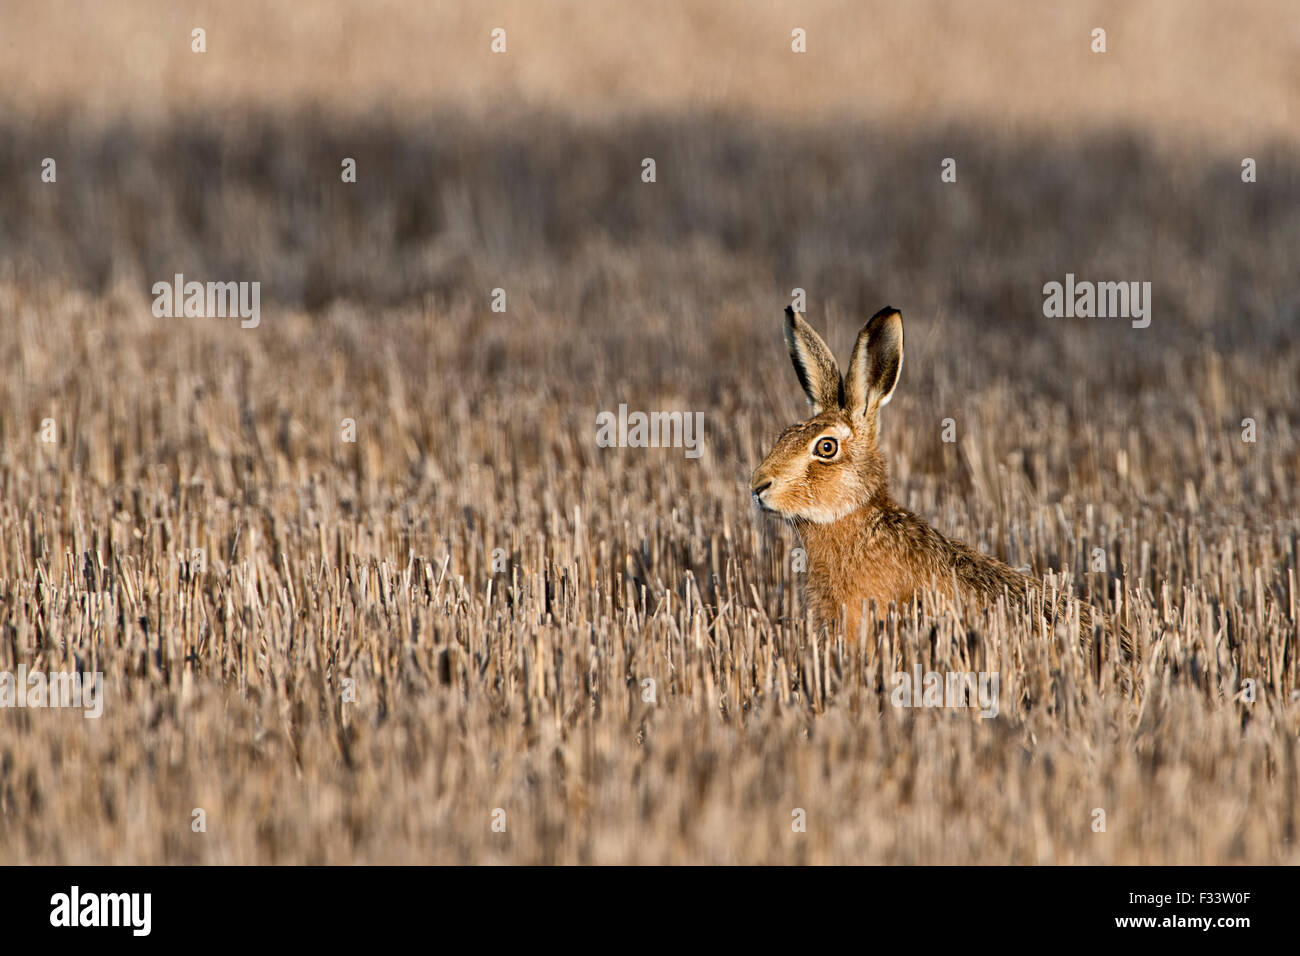 Braun Feldhase Lepus Europaeus im Winter Norfolk UK März Stockbild